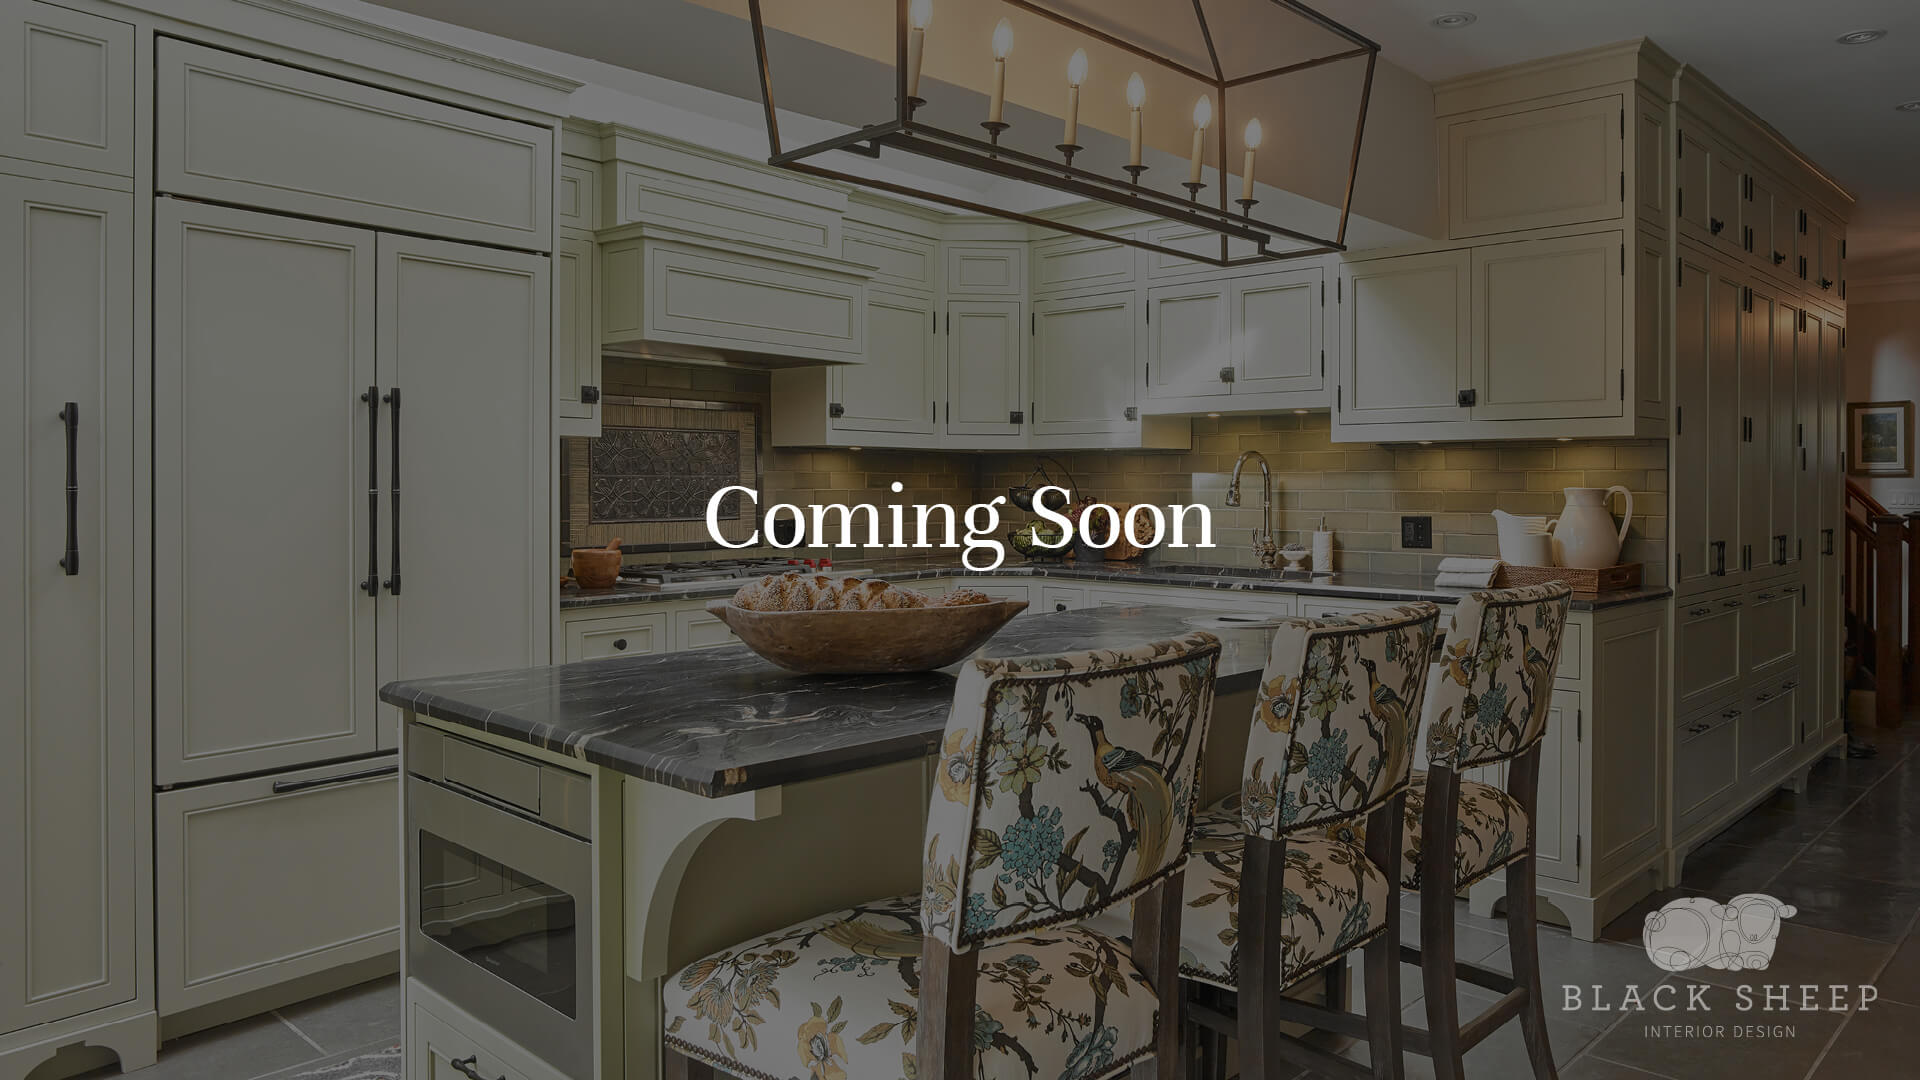 Black Sheep Interior Design Chester Hill Coming Soon